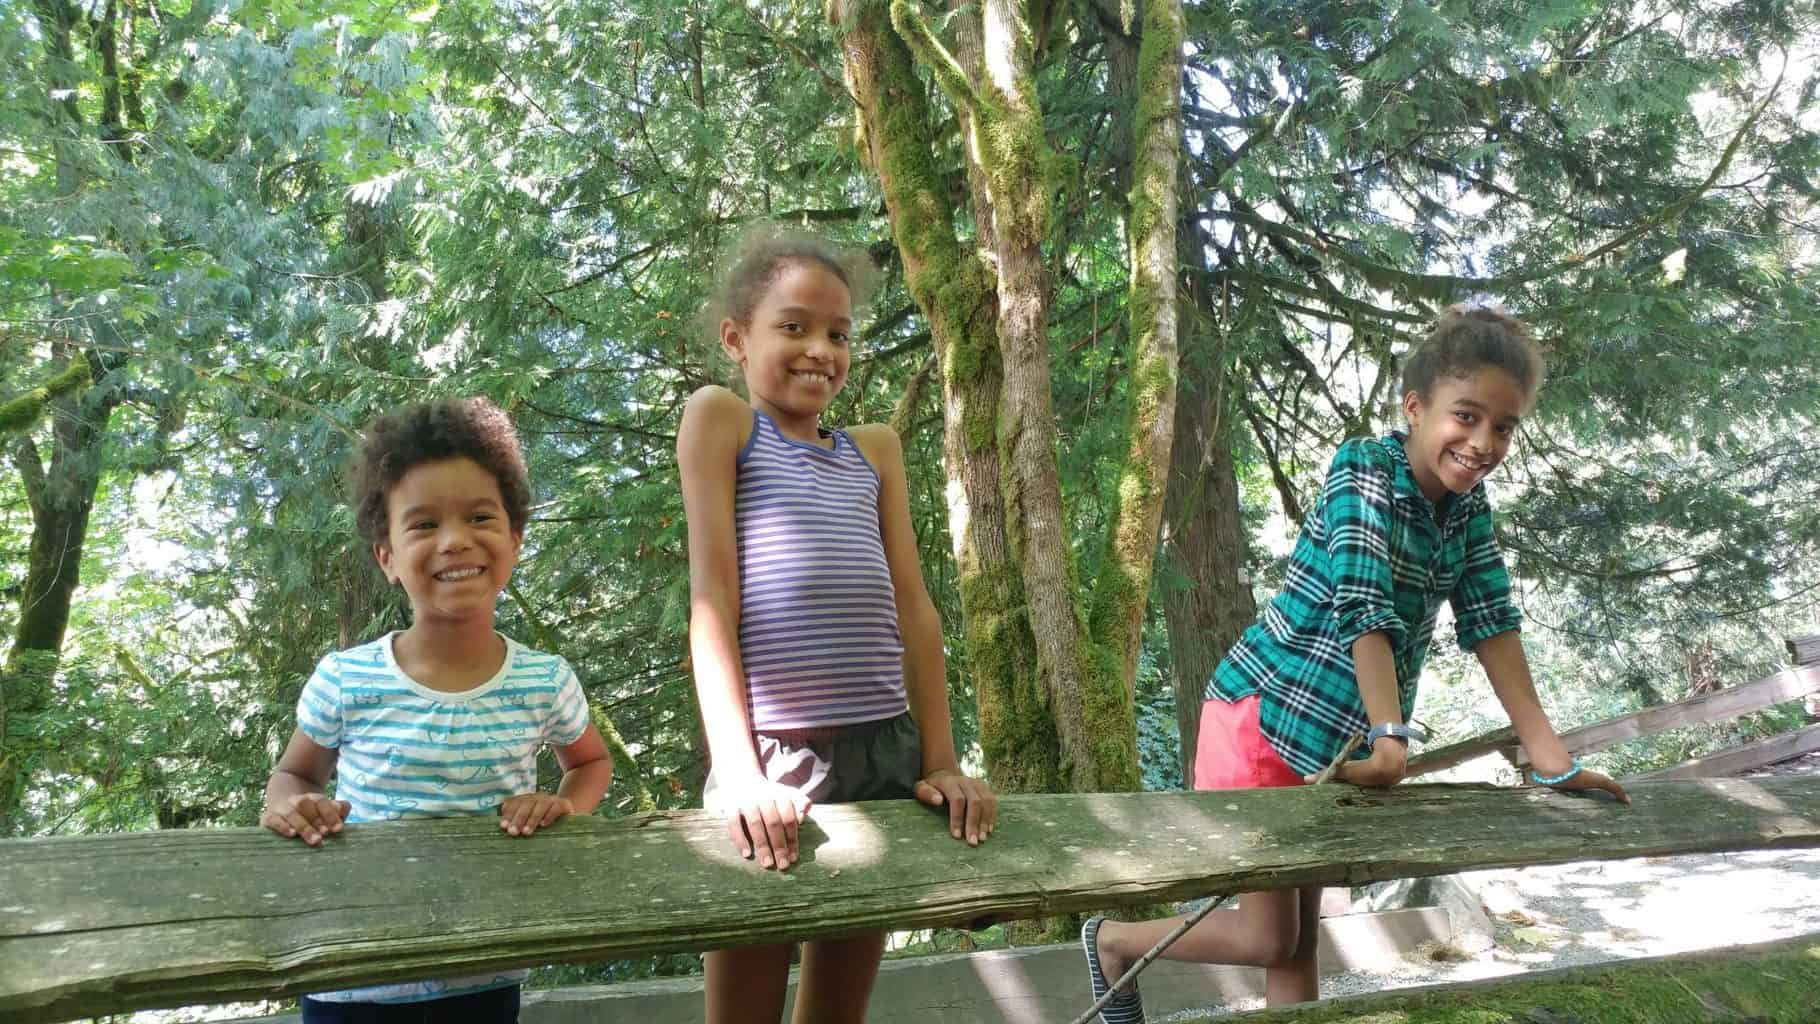 Spending time as a family at summer family camp